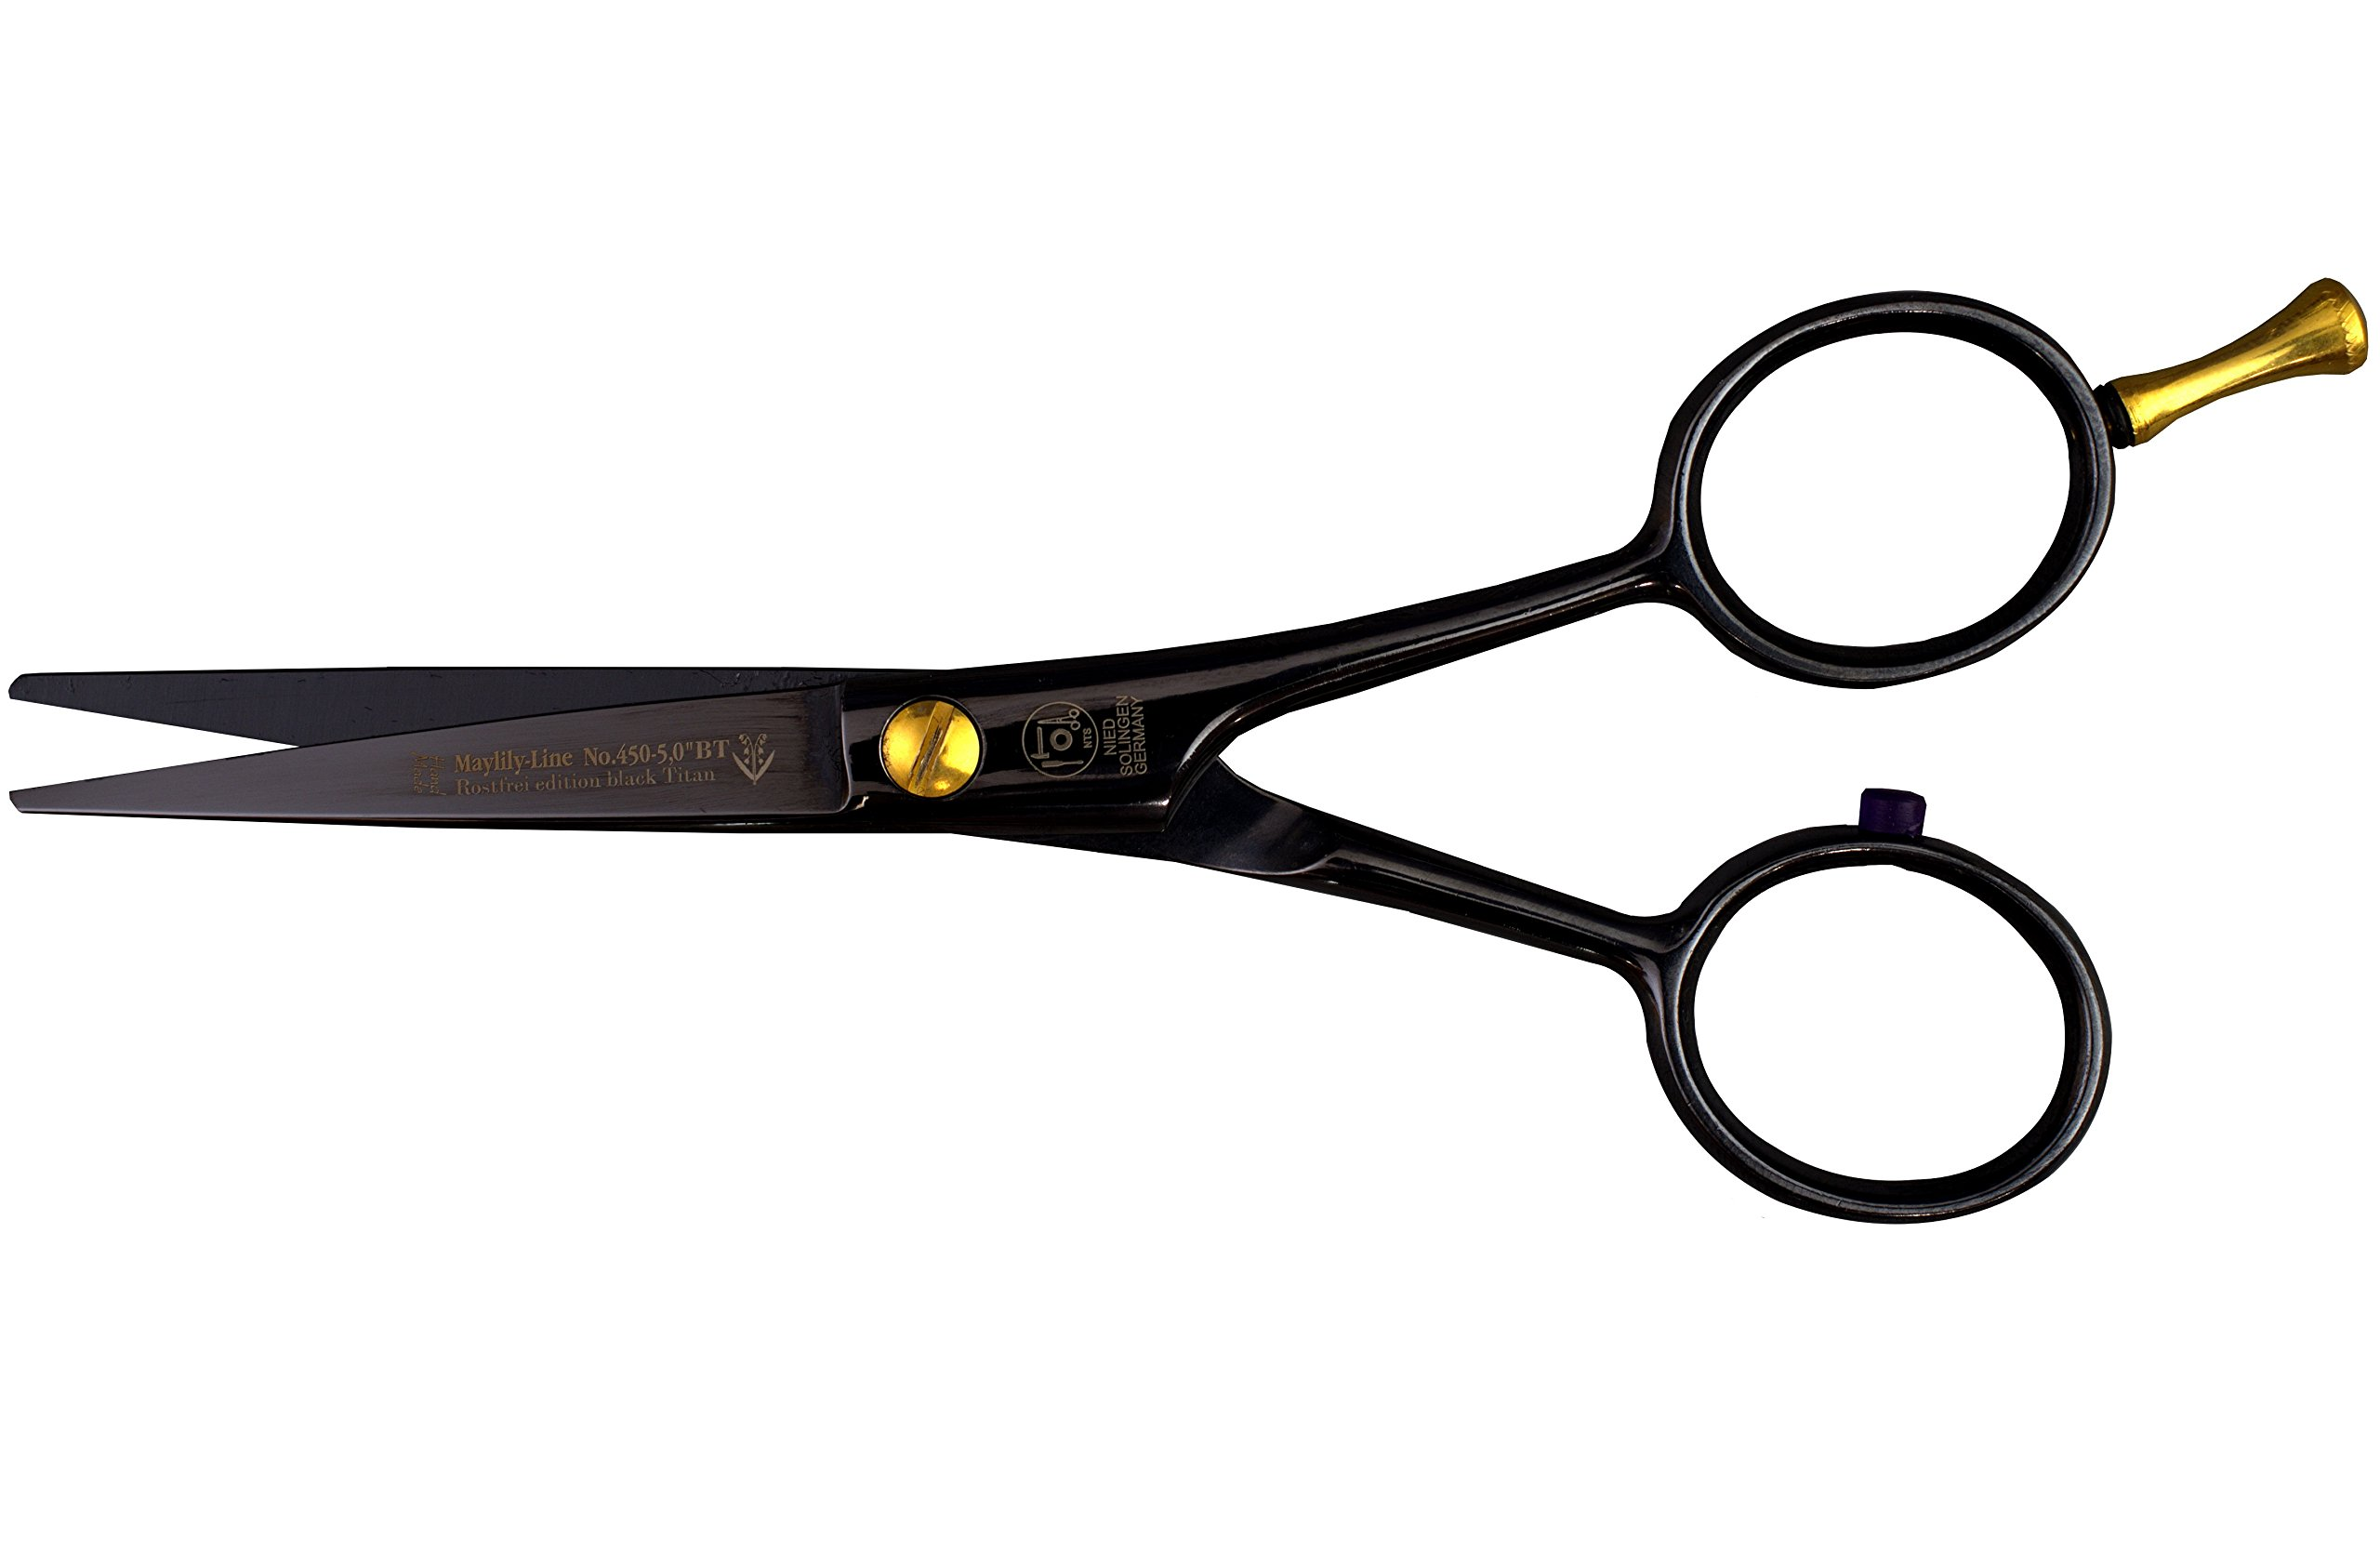 Maylily Titanium GERMANY Beard and Moustache Scissor, 5.125 Inches, Hollow Ground, Ice-Tempered Stainless Steel with Titanium Coating, Made in Solingen, Germany